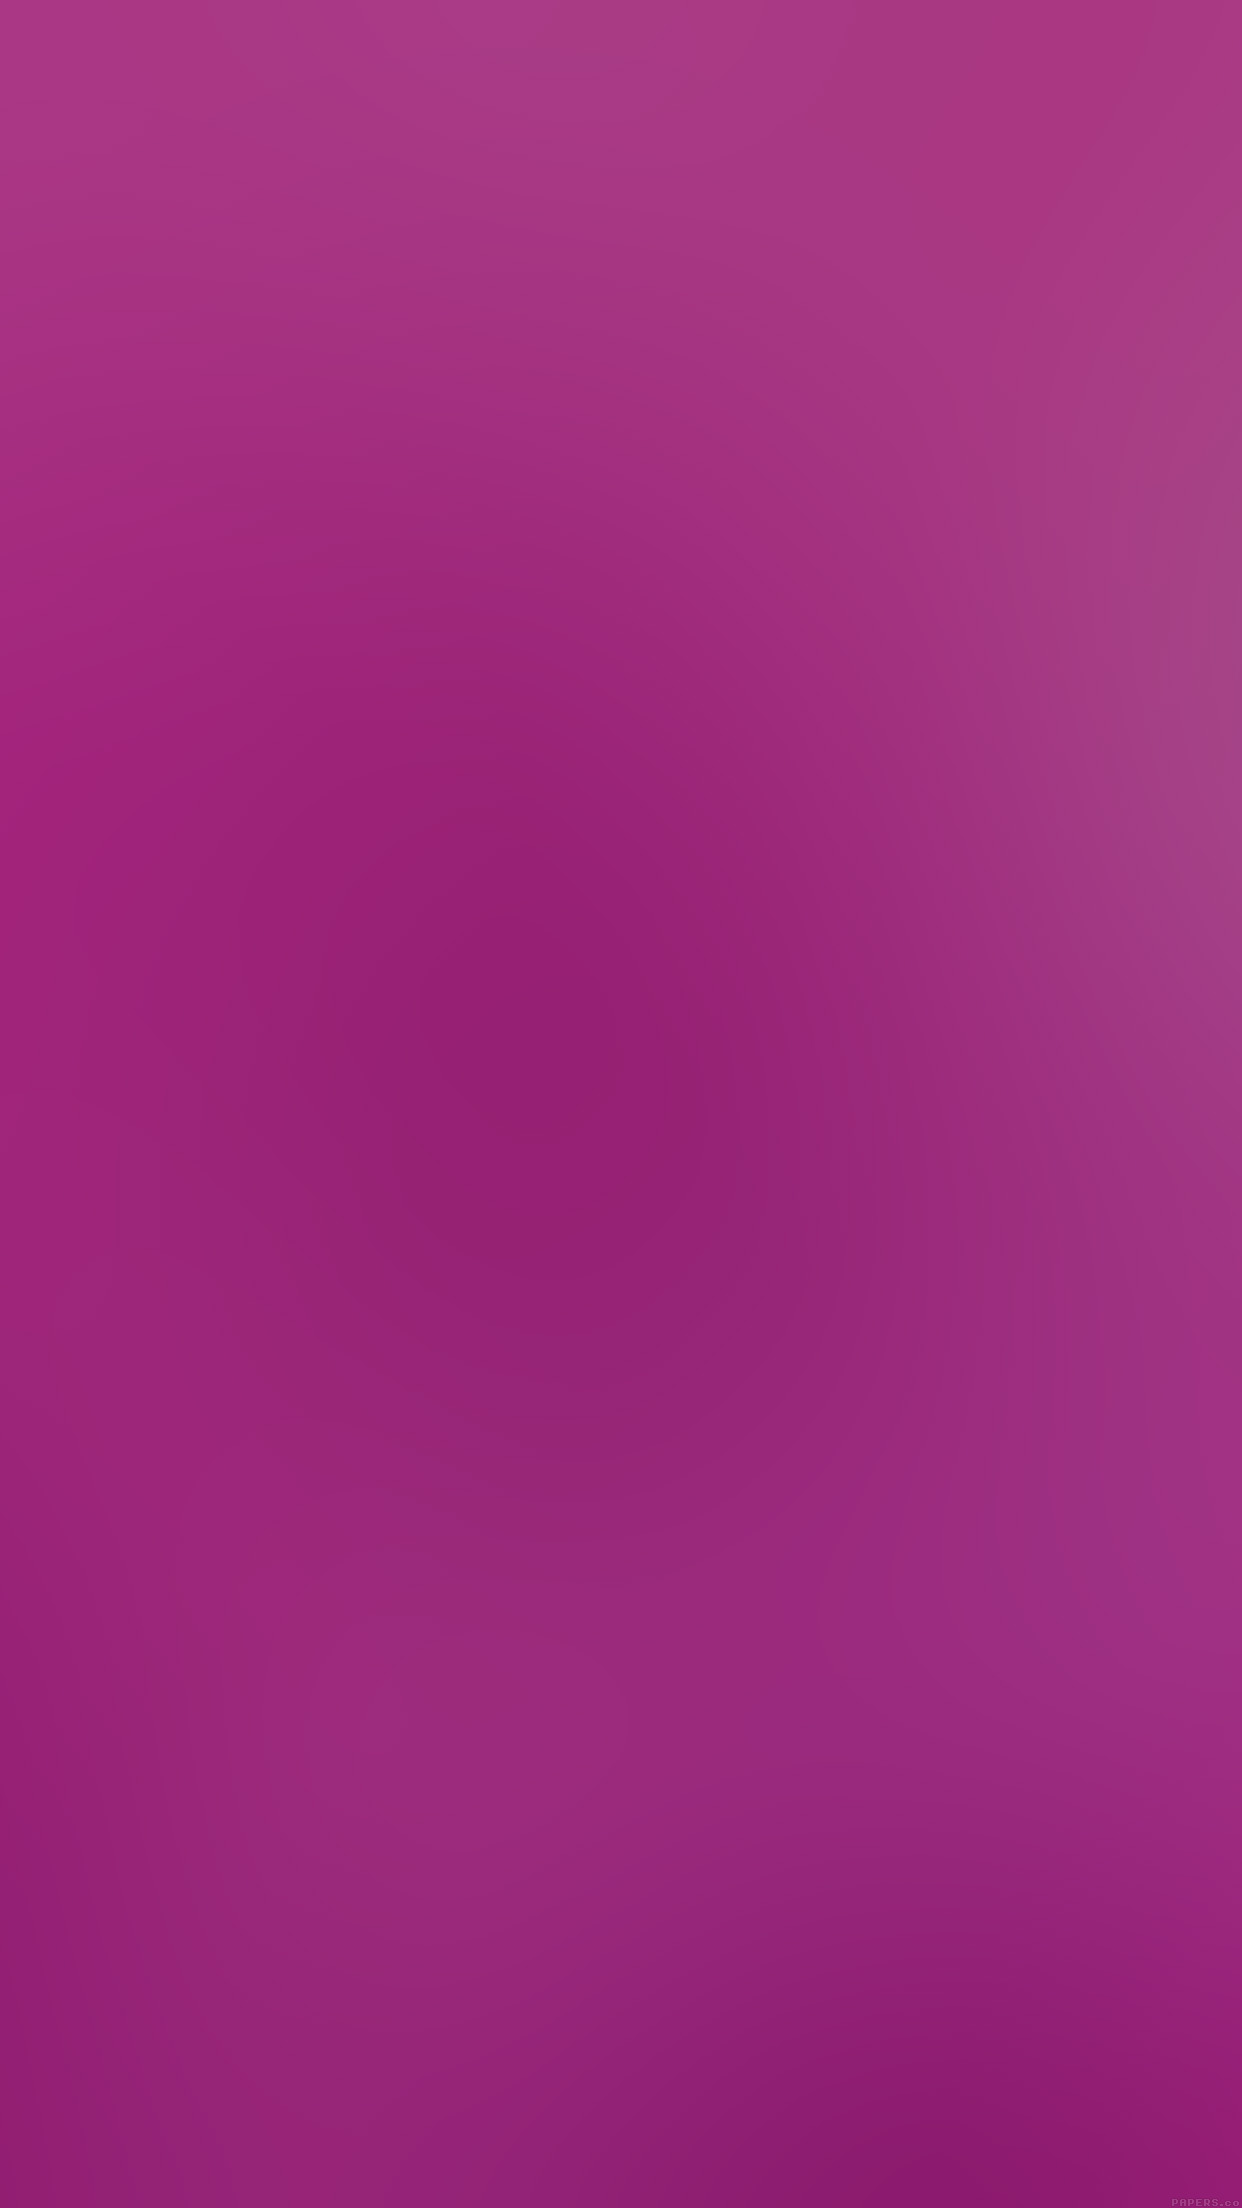 Cute Pink Wallpaper For Iphone 6 Plus Sf10 Purple Pink Fog Gradation Blur Papers Co